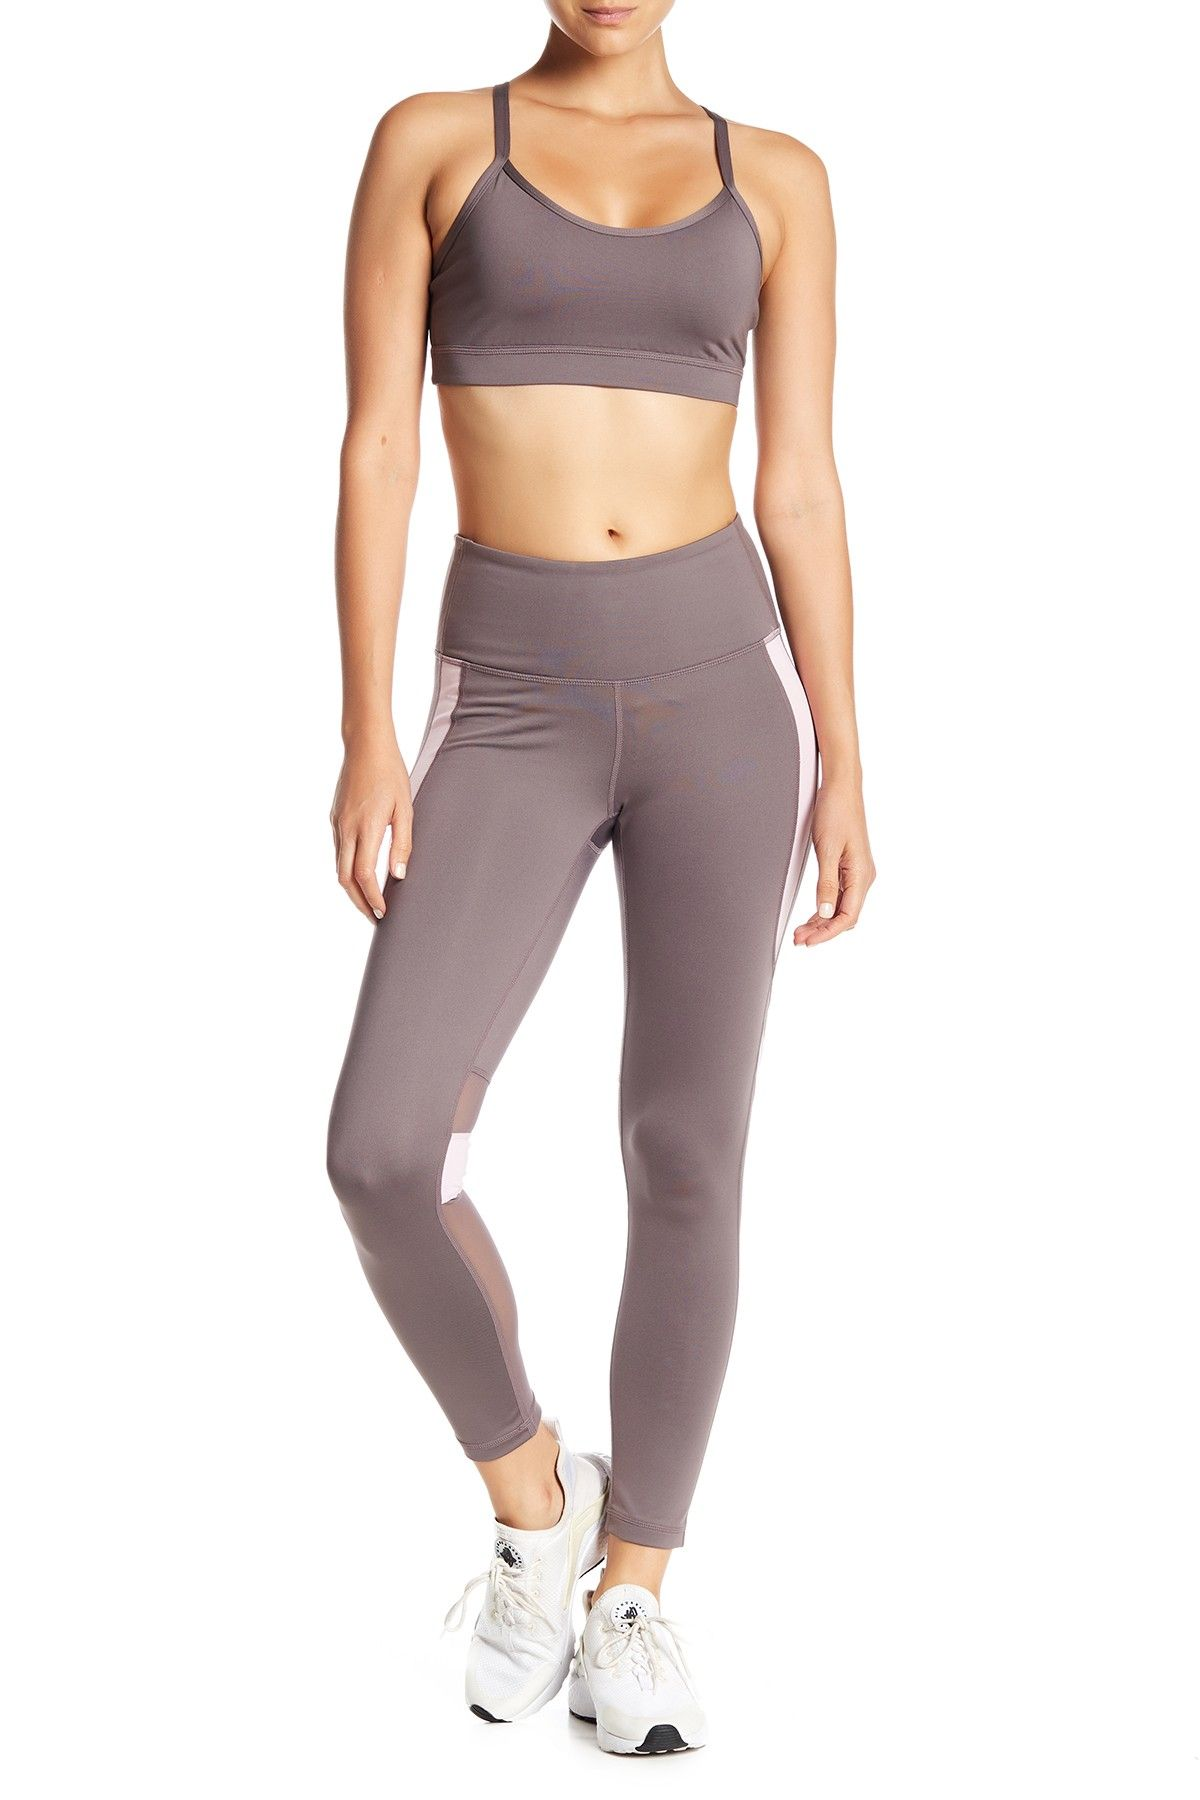 d98b0f19a6 Z By Zella - High Waisted Mesh Detailed Midi Leggings. Free Shipping on  orders over $100.